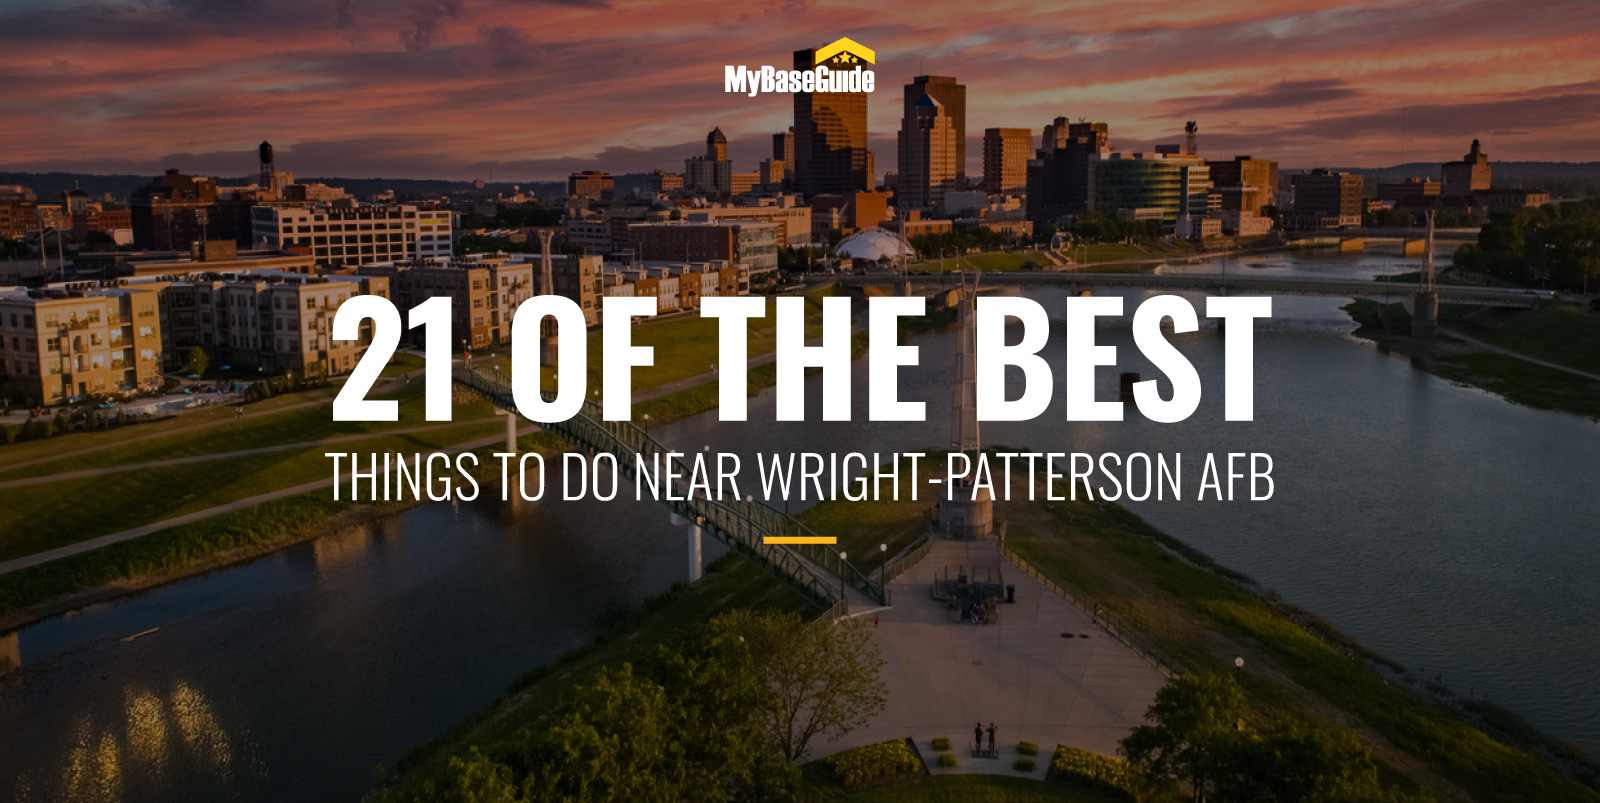 21 Of the Best Wright-Patterson AFB Things to Do